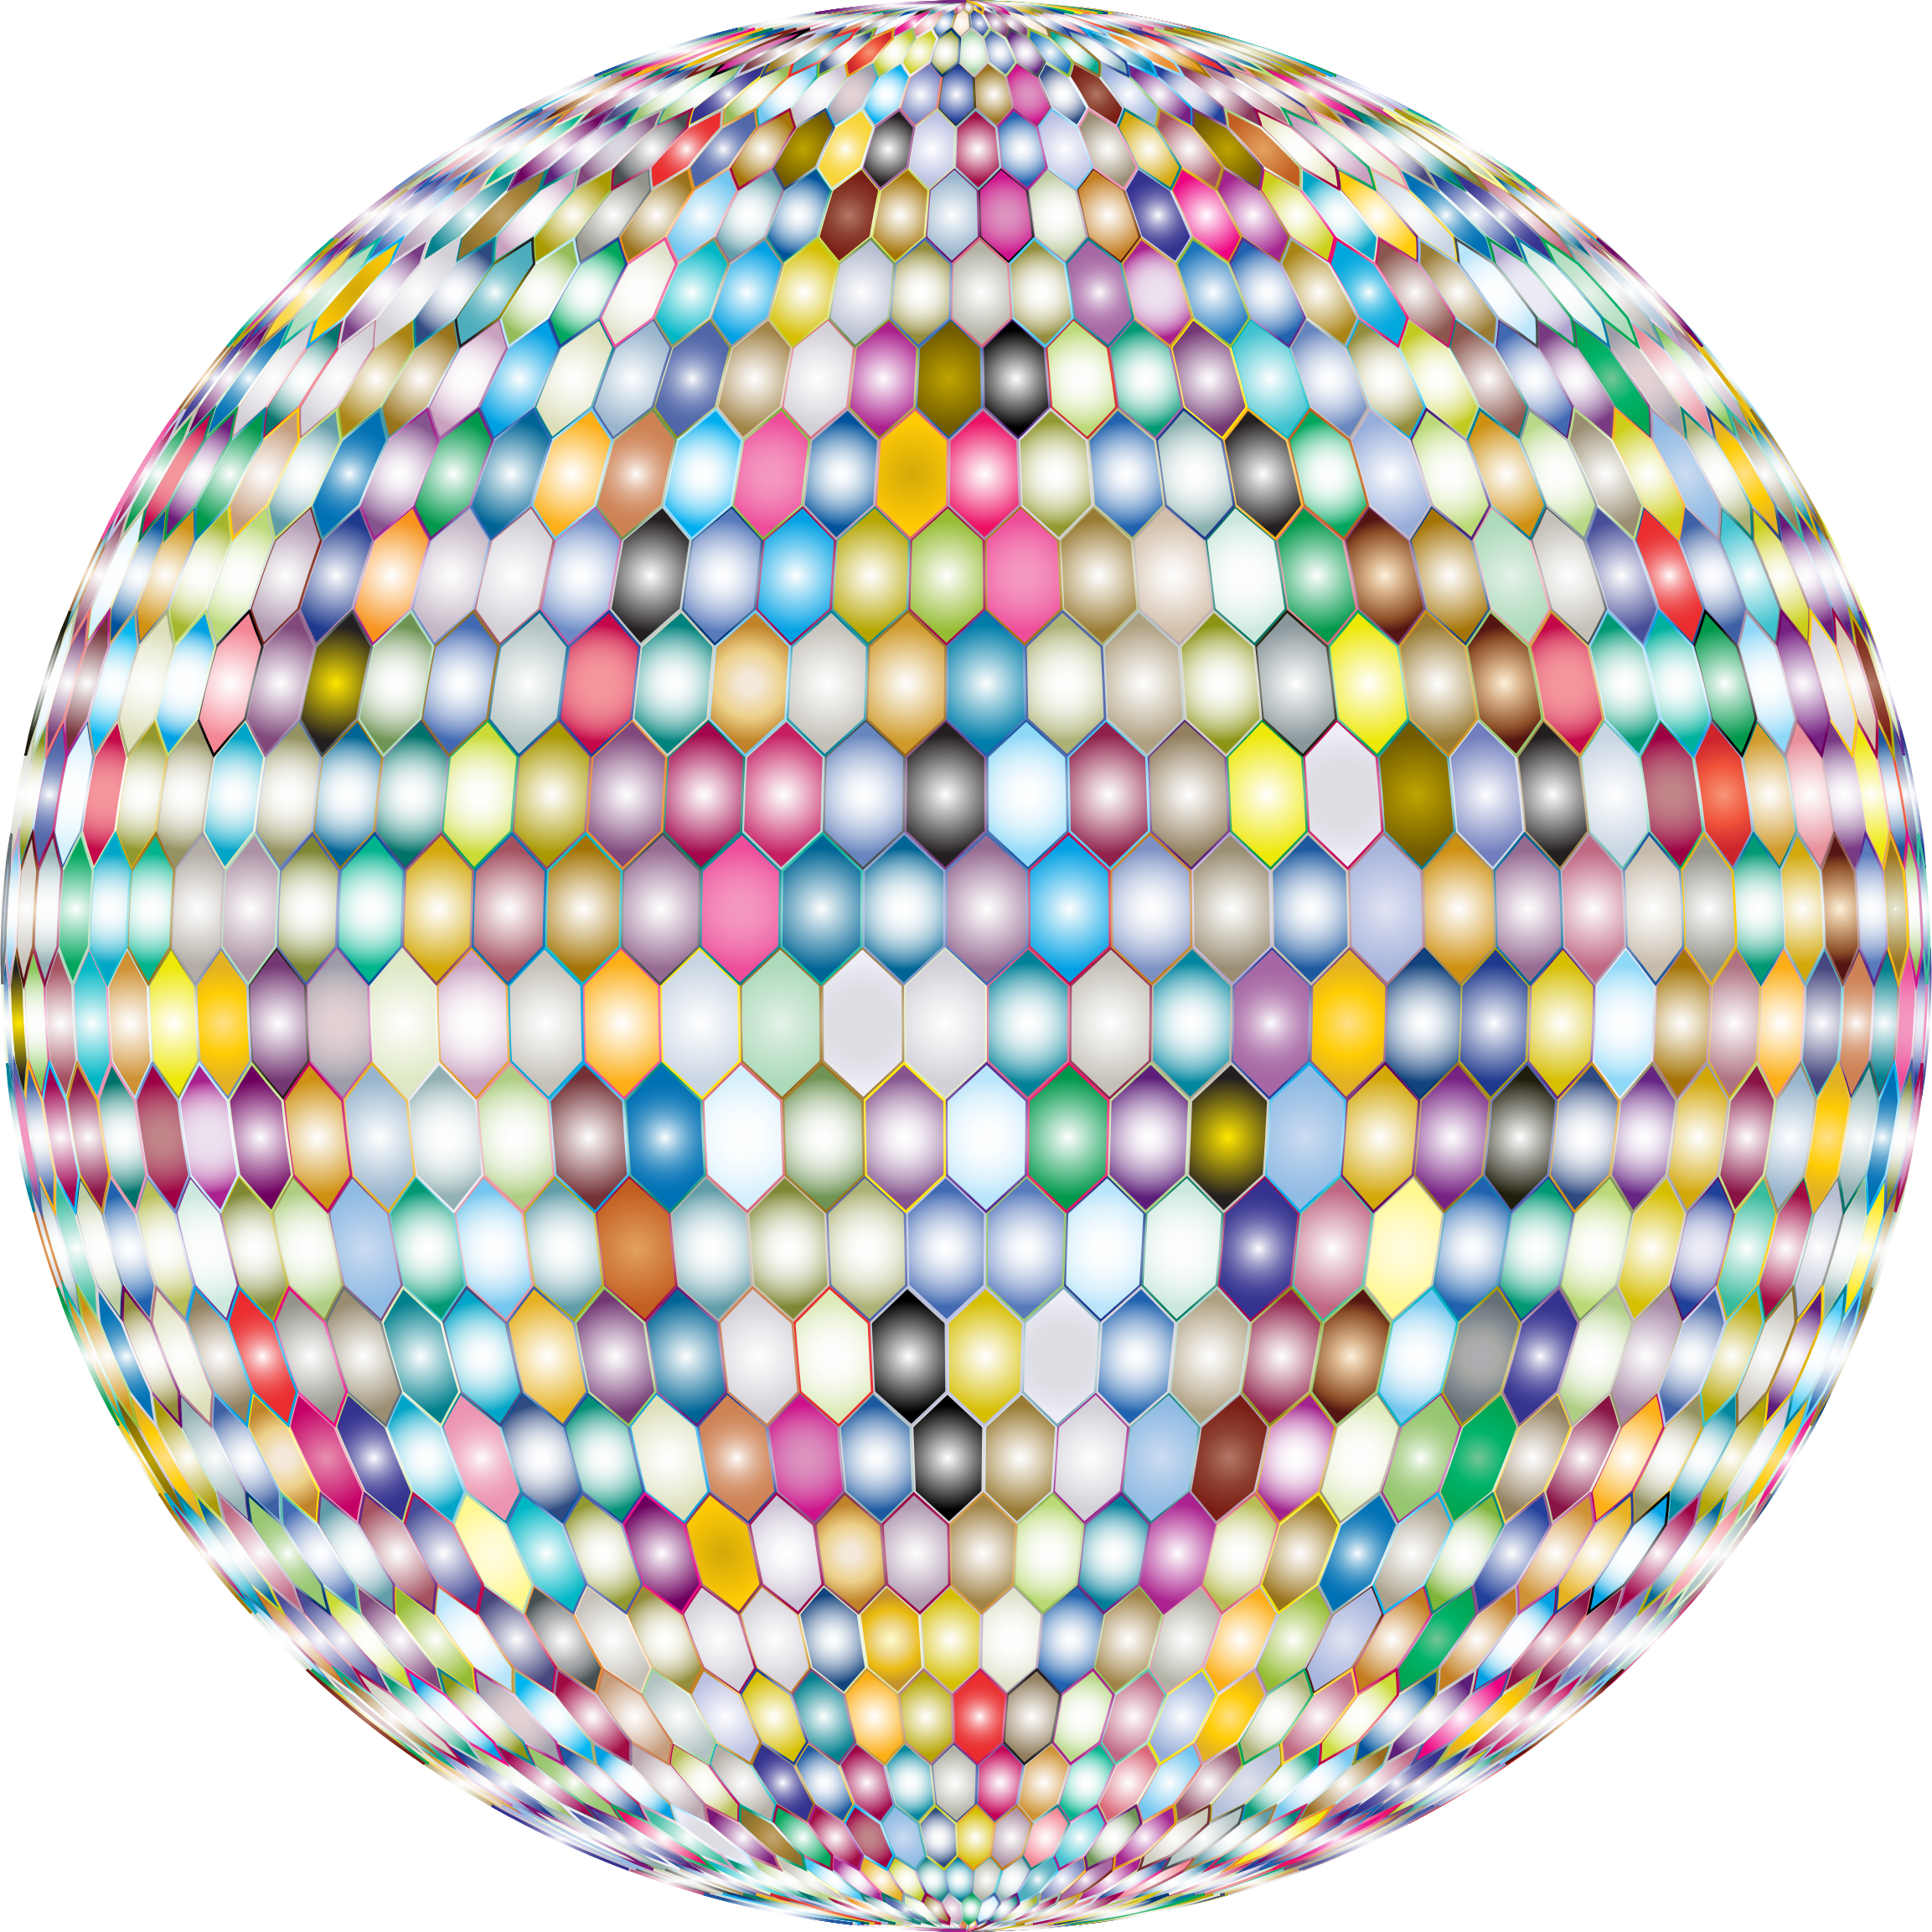 Prismatic Hexagonal Grid Sphere Variation 2 3 by GDJ